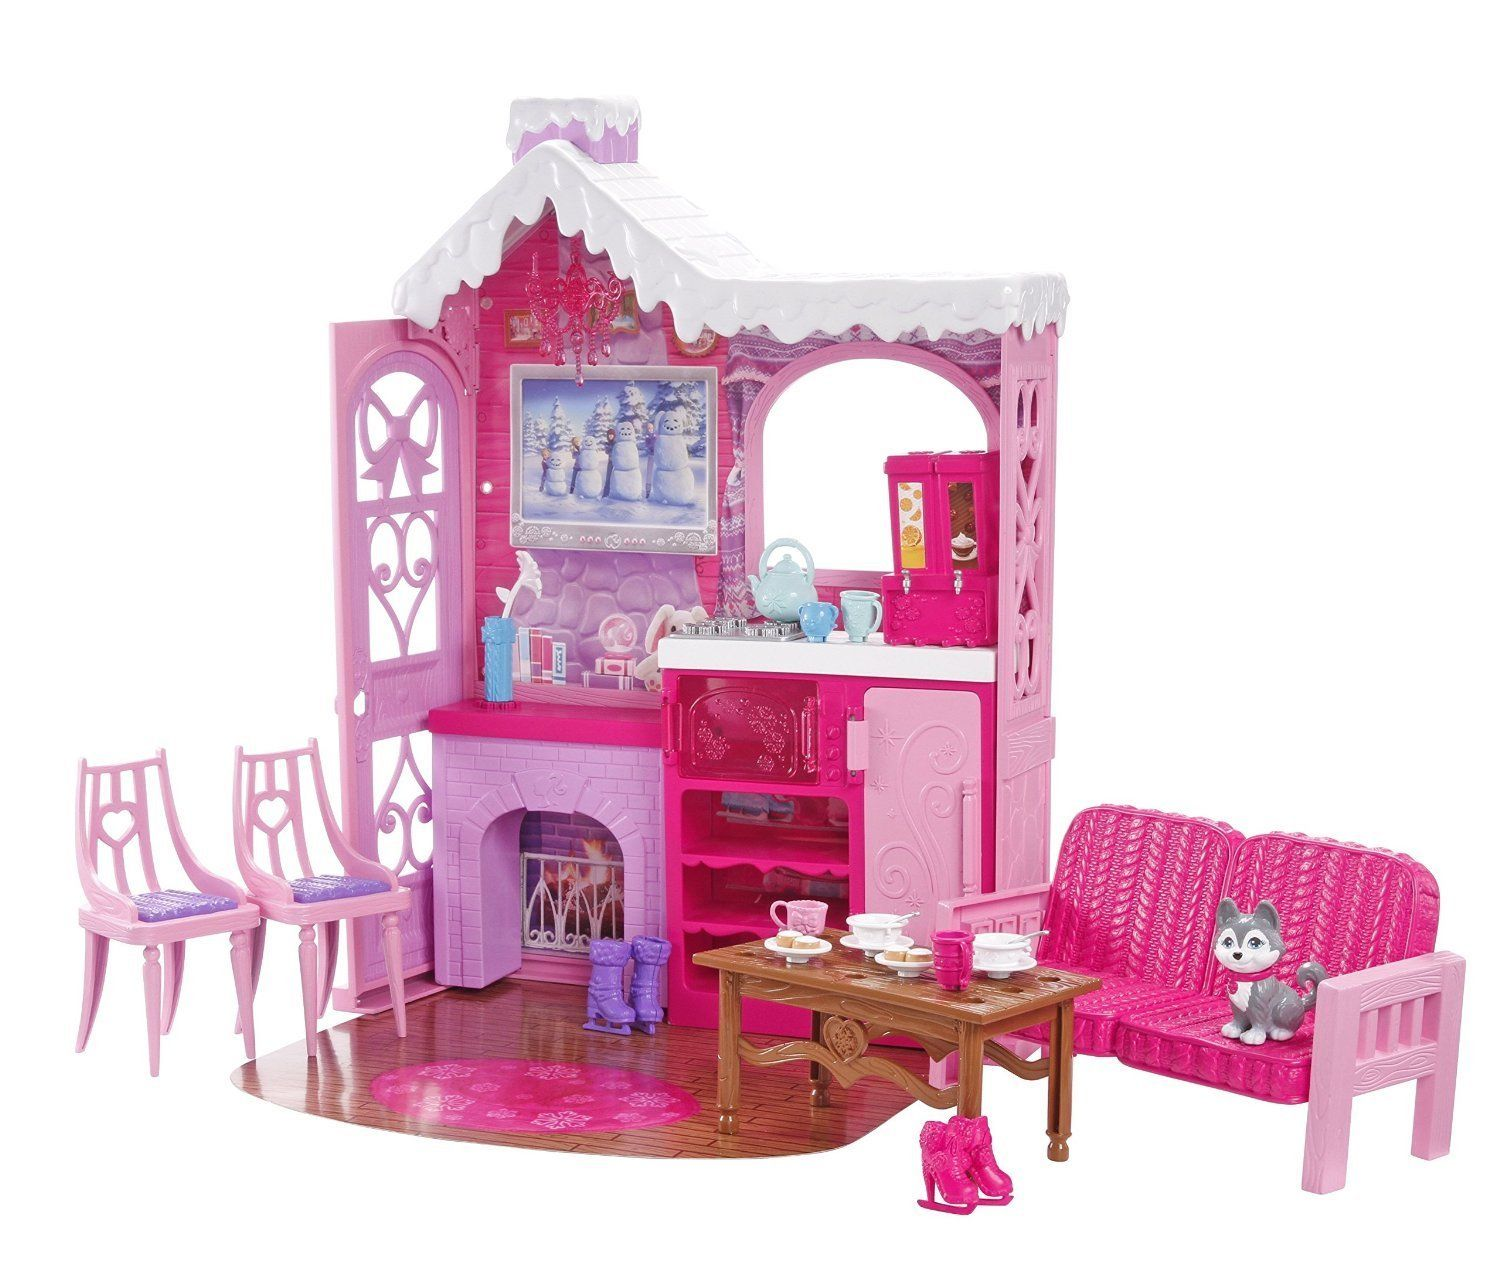 Barbie Ski Chalet and 3 Dolls Amazon.co.uk Toys & Games